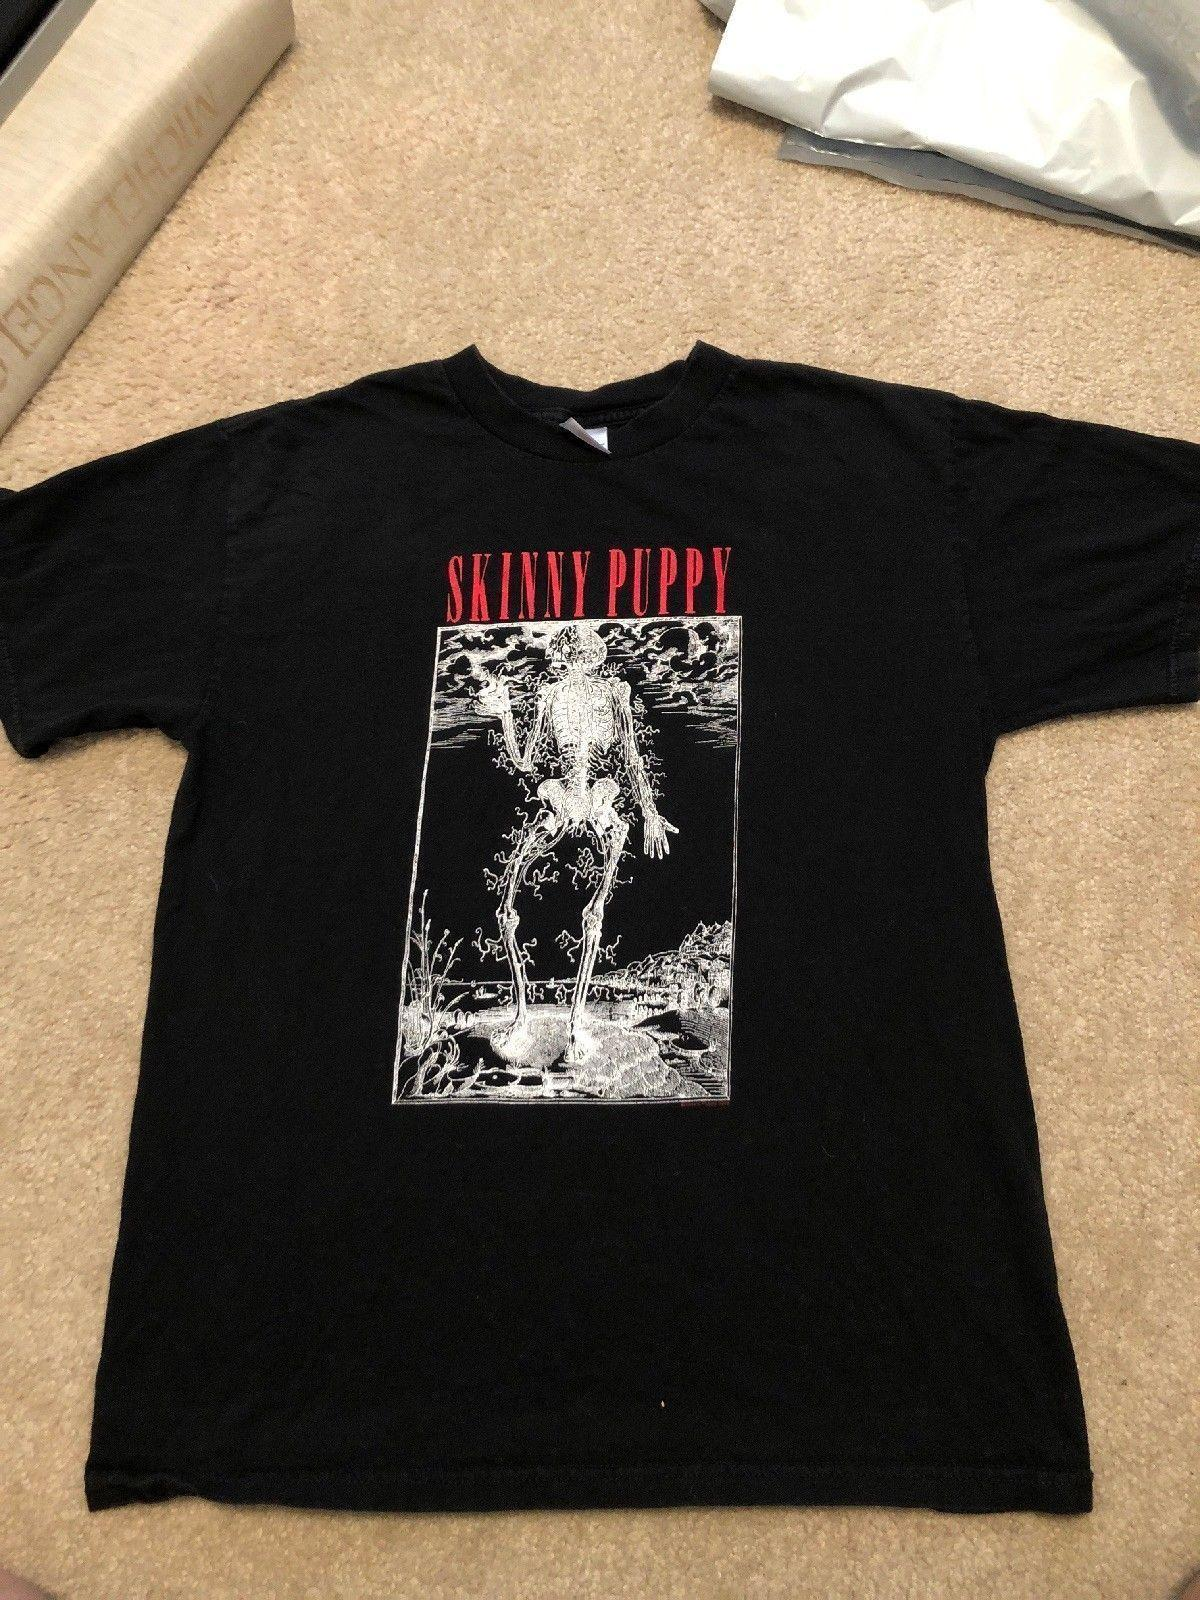 bad70c159fec Vintage T Shirt Skinny Puppy Limited Edition Reprint Size S 5XL Funny 100%  Cotton T Shirt Mens Dress Shirt Patriotic T Shirts From Pubcup, $16.24|  DHgate.